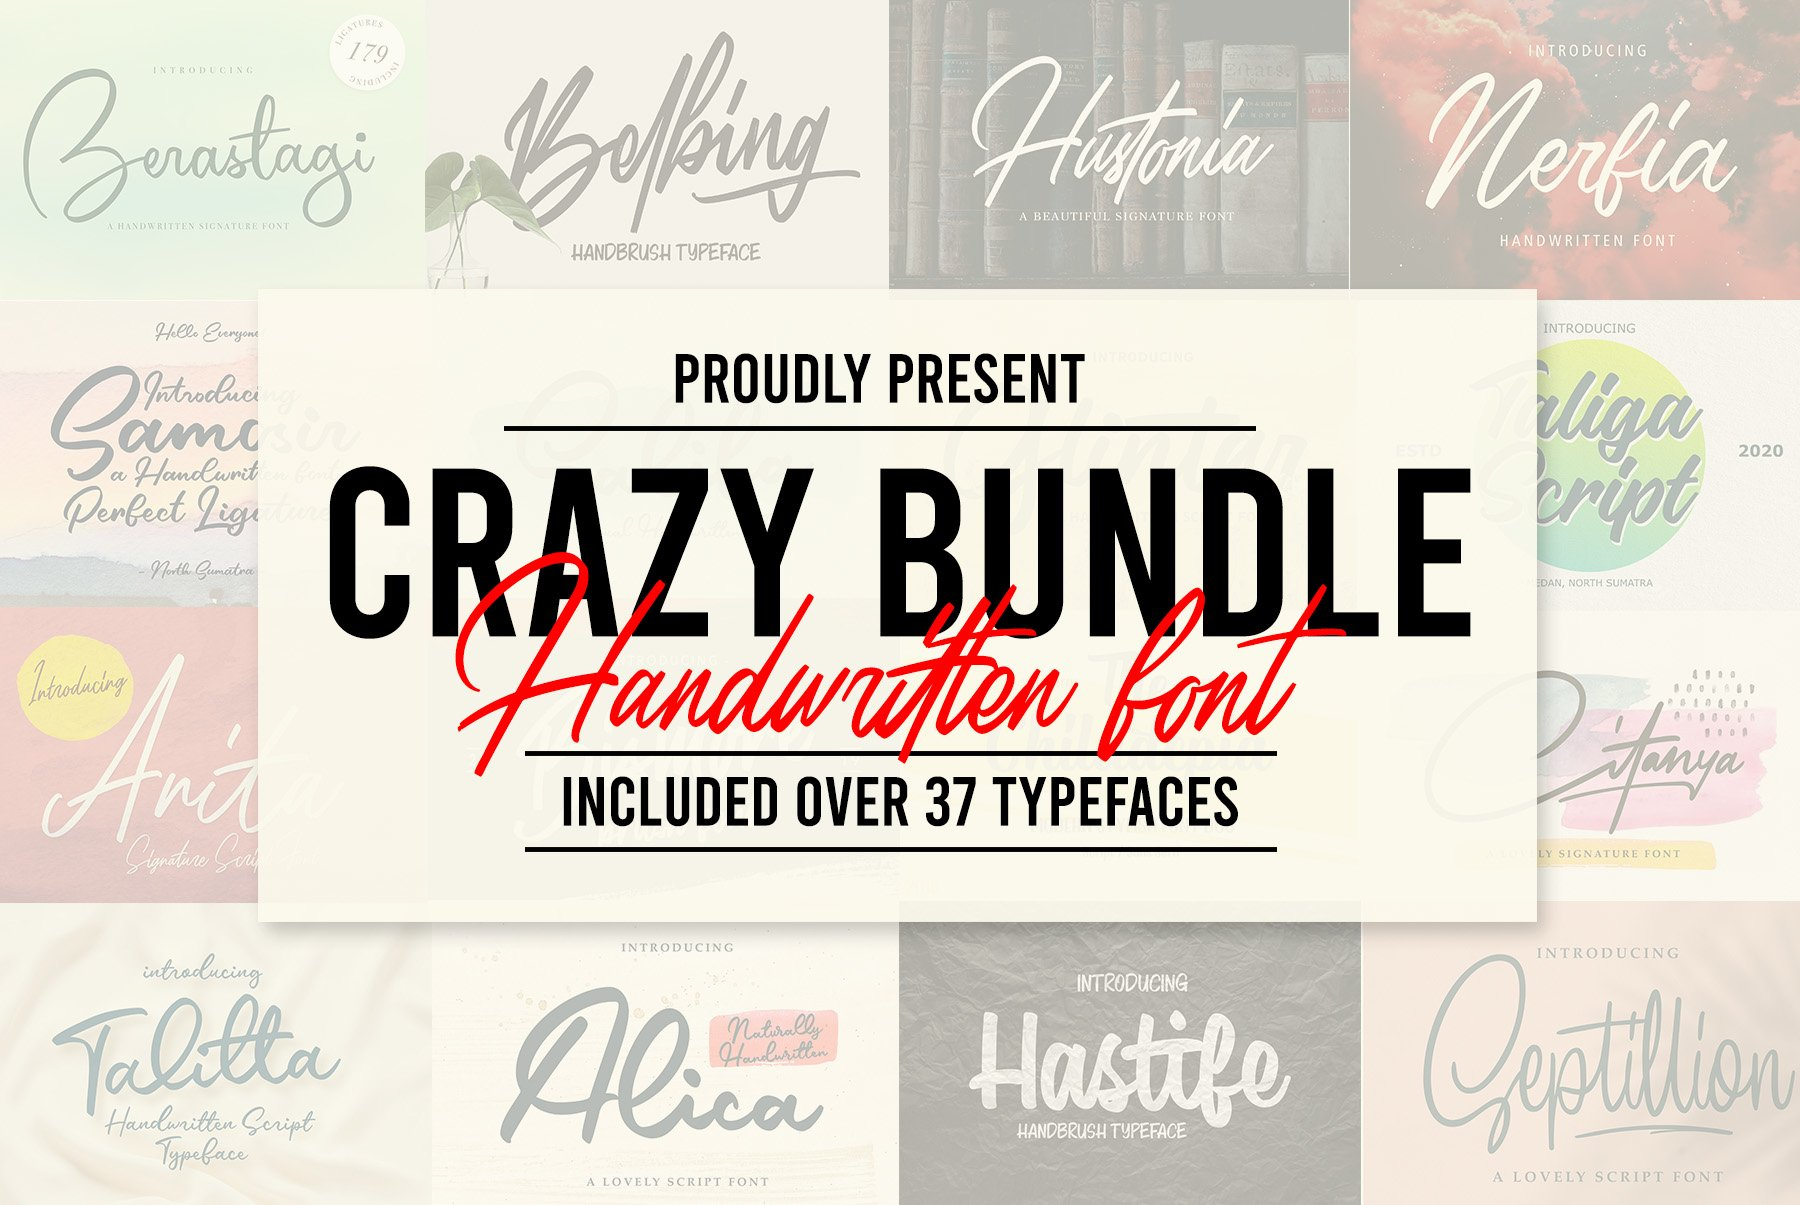 CRAZY BUNDLE - Handwritten Font example image 1